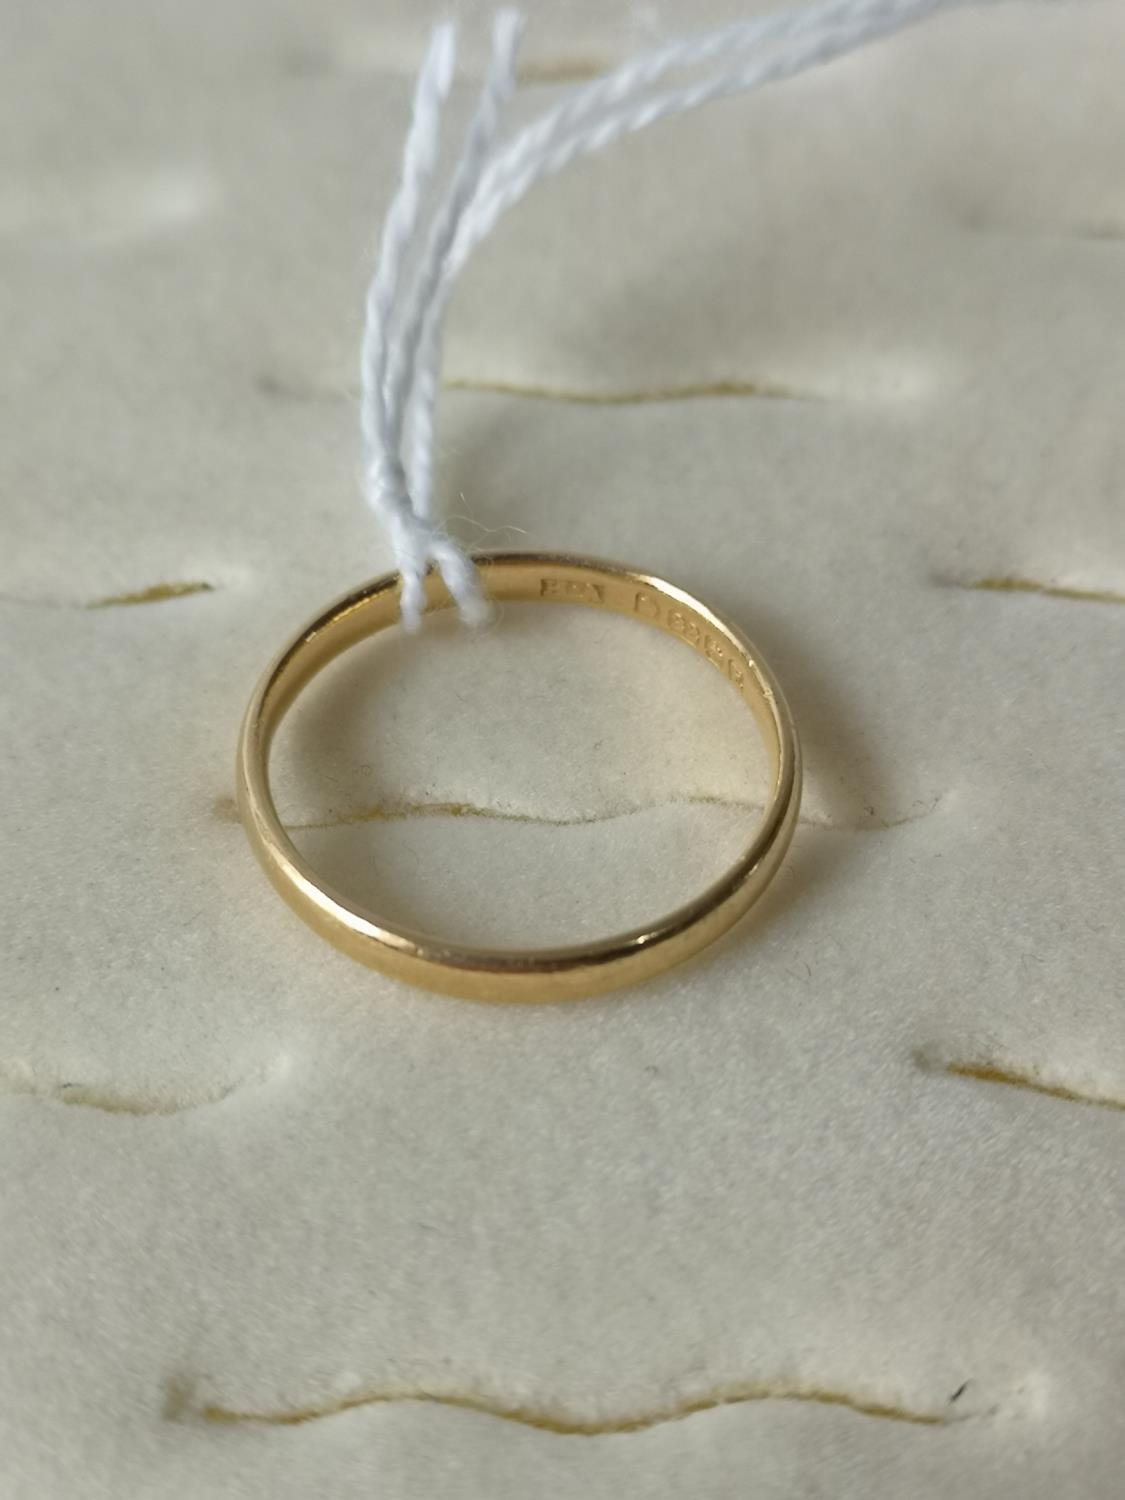 A 22ct gold wedding band [Ring size N] [2.33Grams] - Image 2 of 3